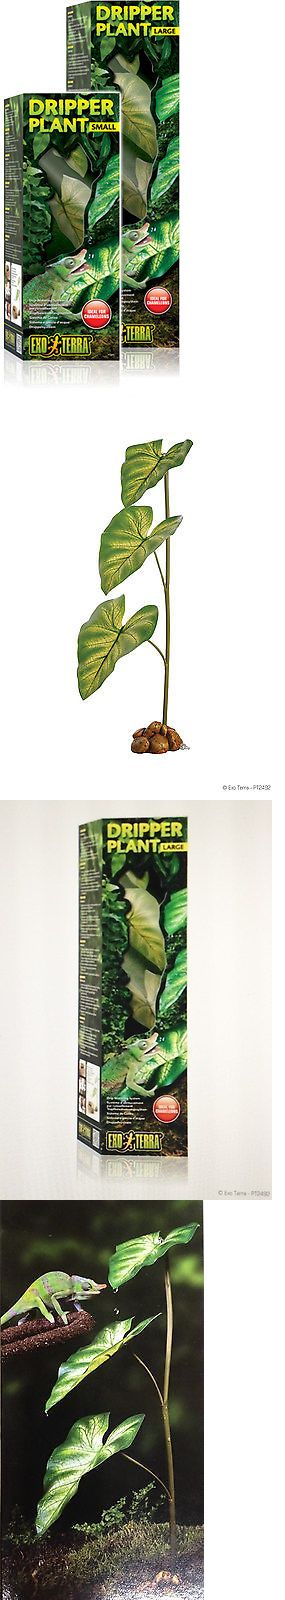 Reptile Supplies 1285: Exo Terra Dripper Plant Large , Hagen, Pt-2492 -> BUY IT NOW ONLY: $39.0 on eBay!